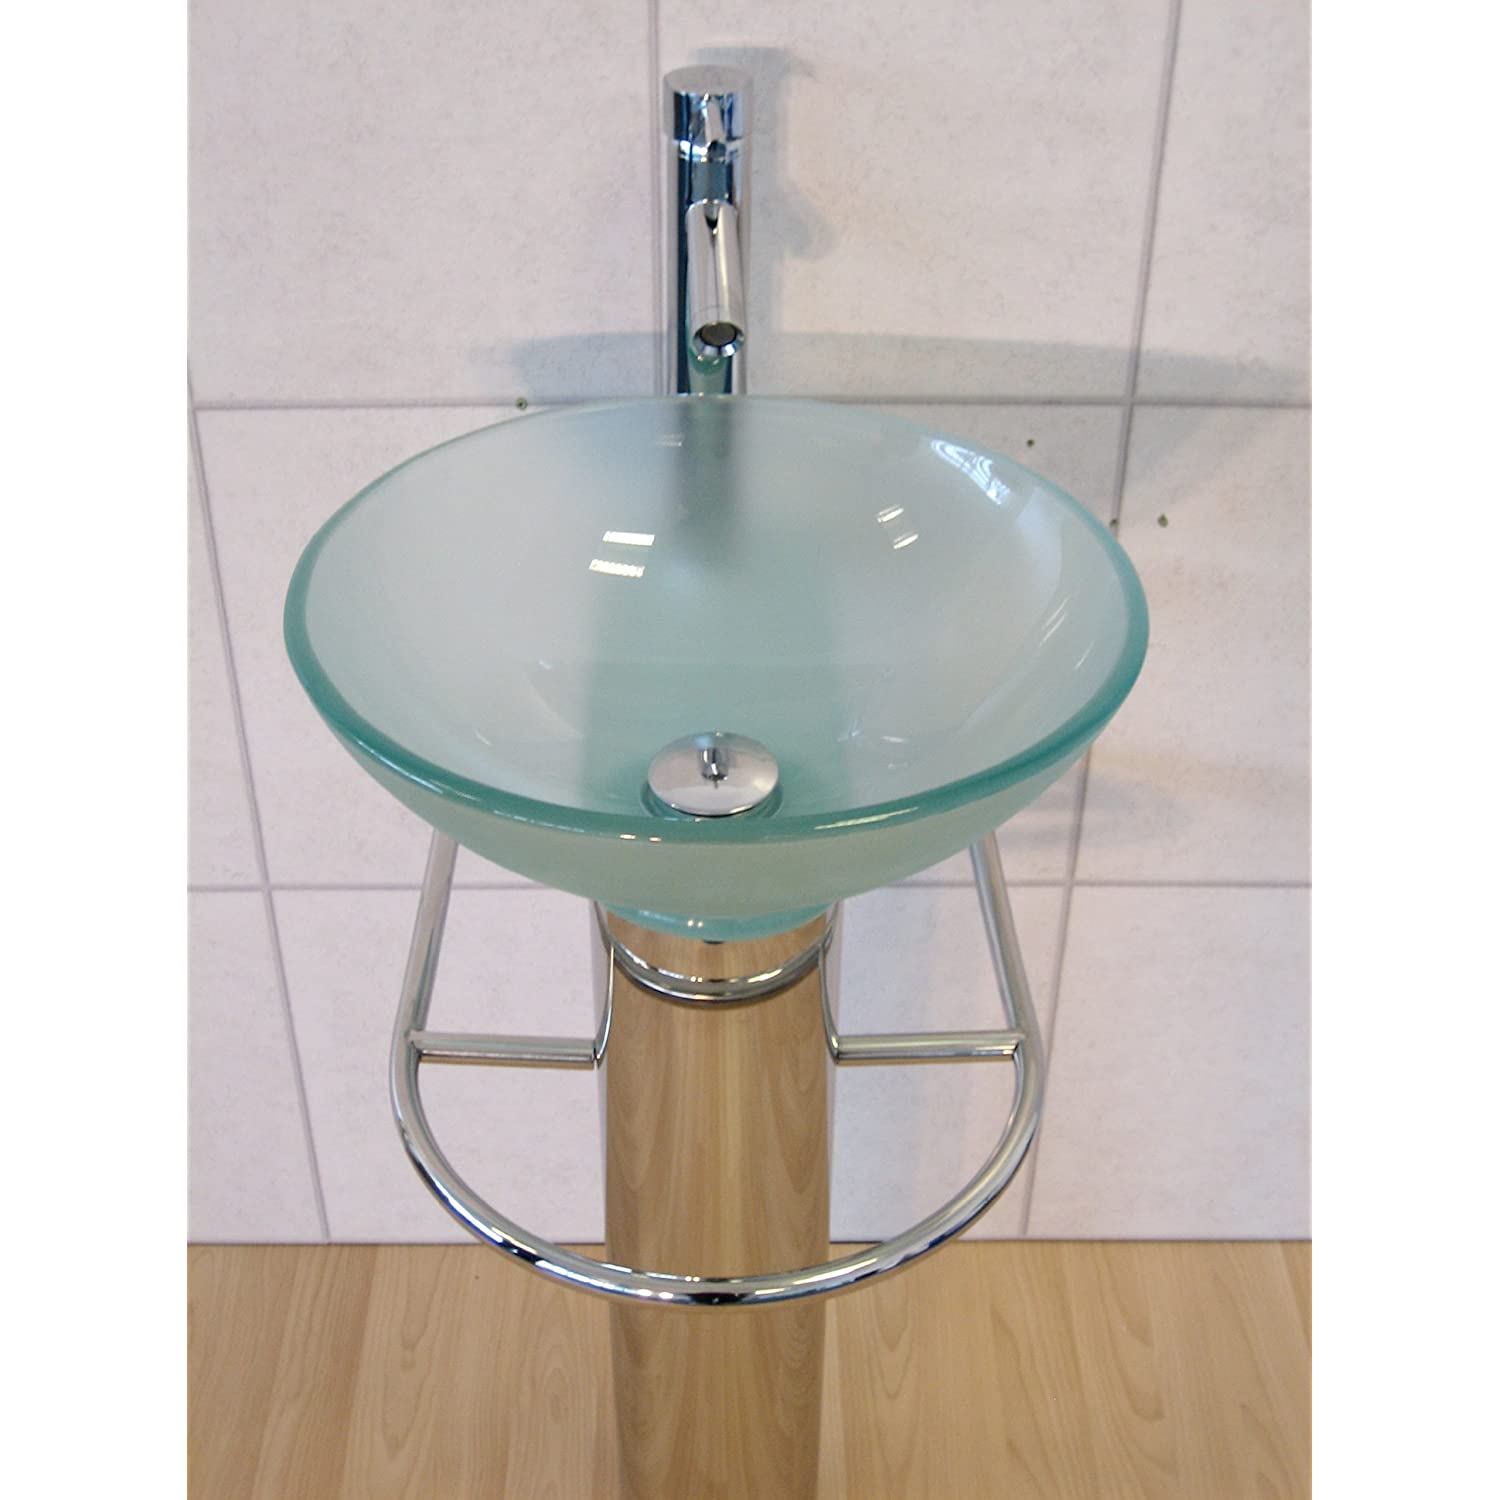 Fittings For Glass Wash Basin Table